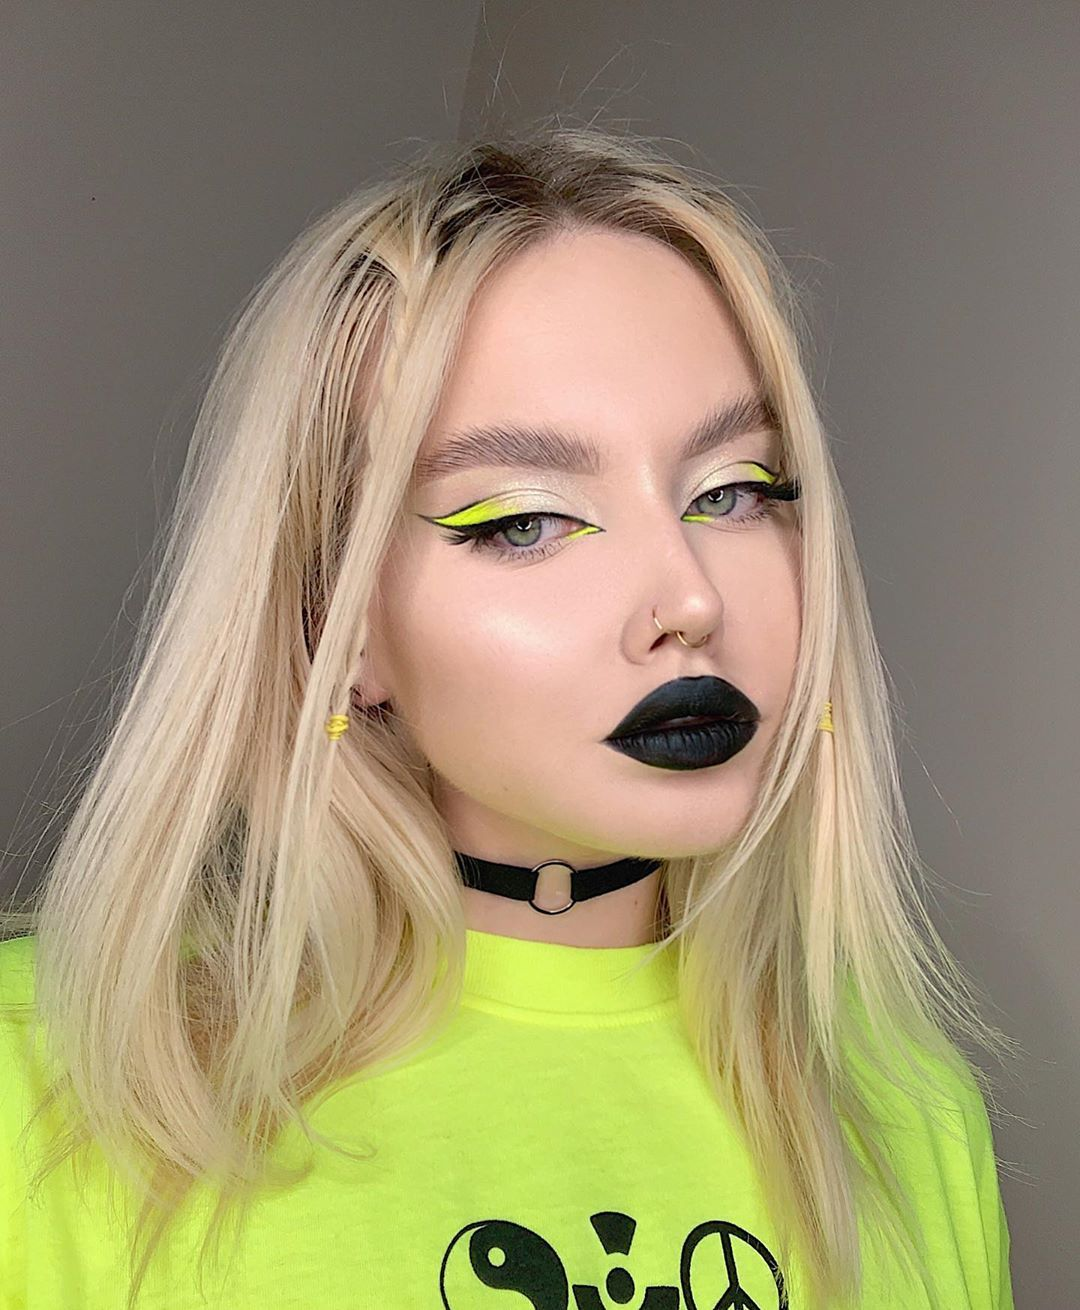 """erica' makeup artist on Instagram: """"i want this look to be my full-time job👽 ⠀ > EYES: @limecrimemakeup venus 2 palette @suvabeauty hydra fx in dance party @kvdveganbeauty…"""""""